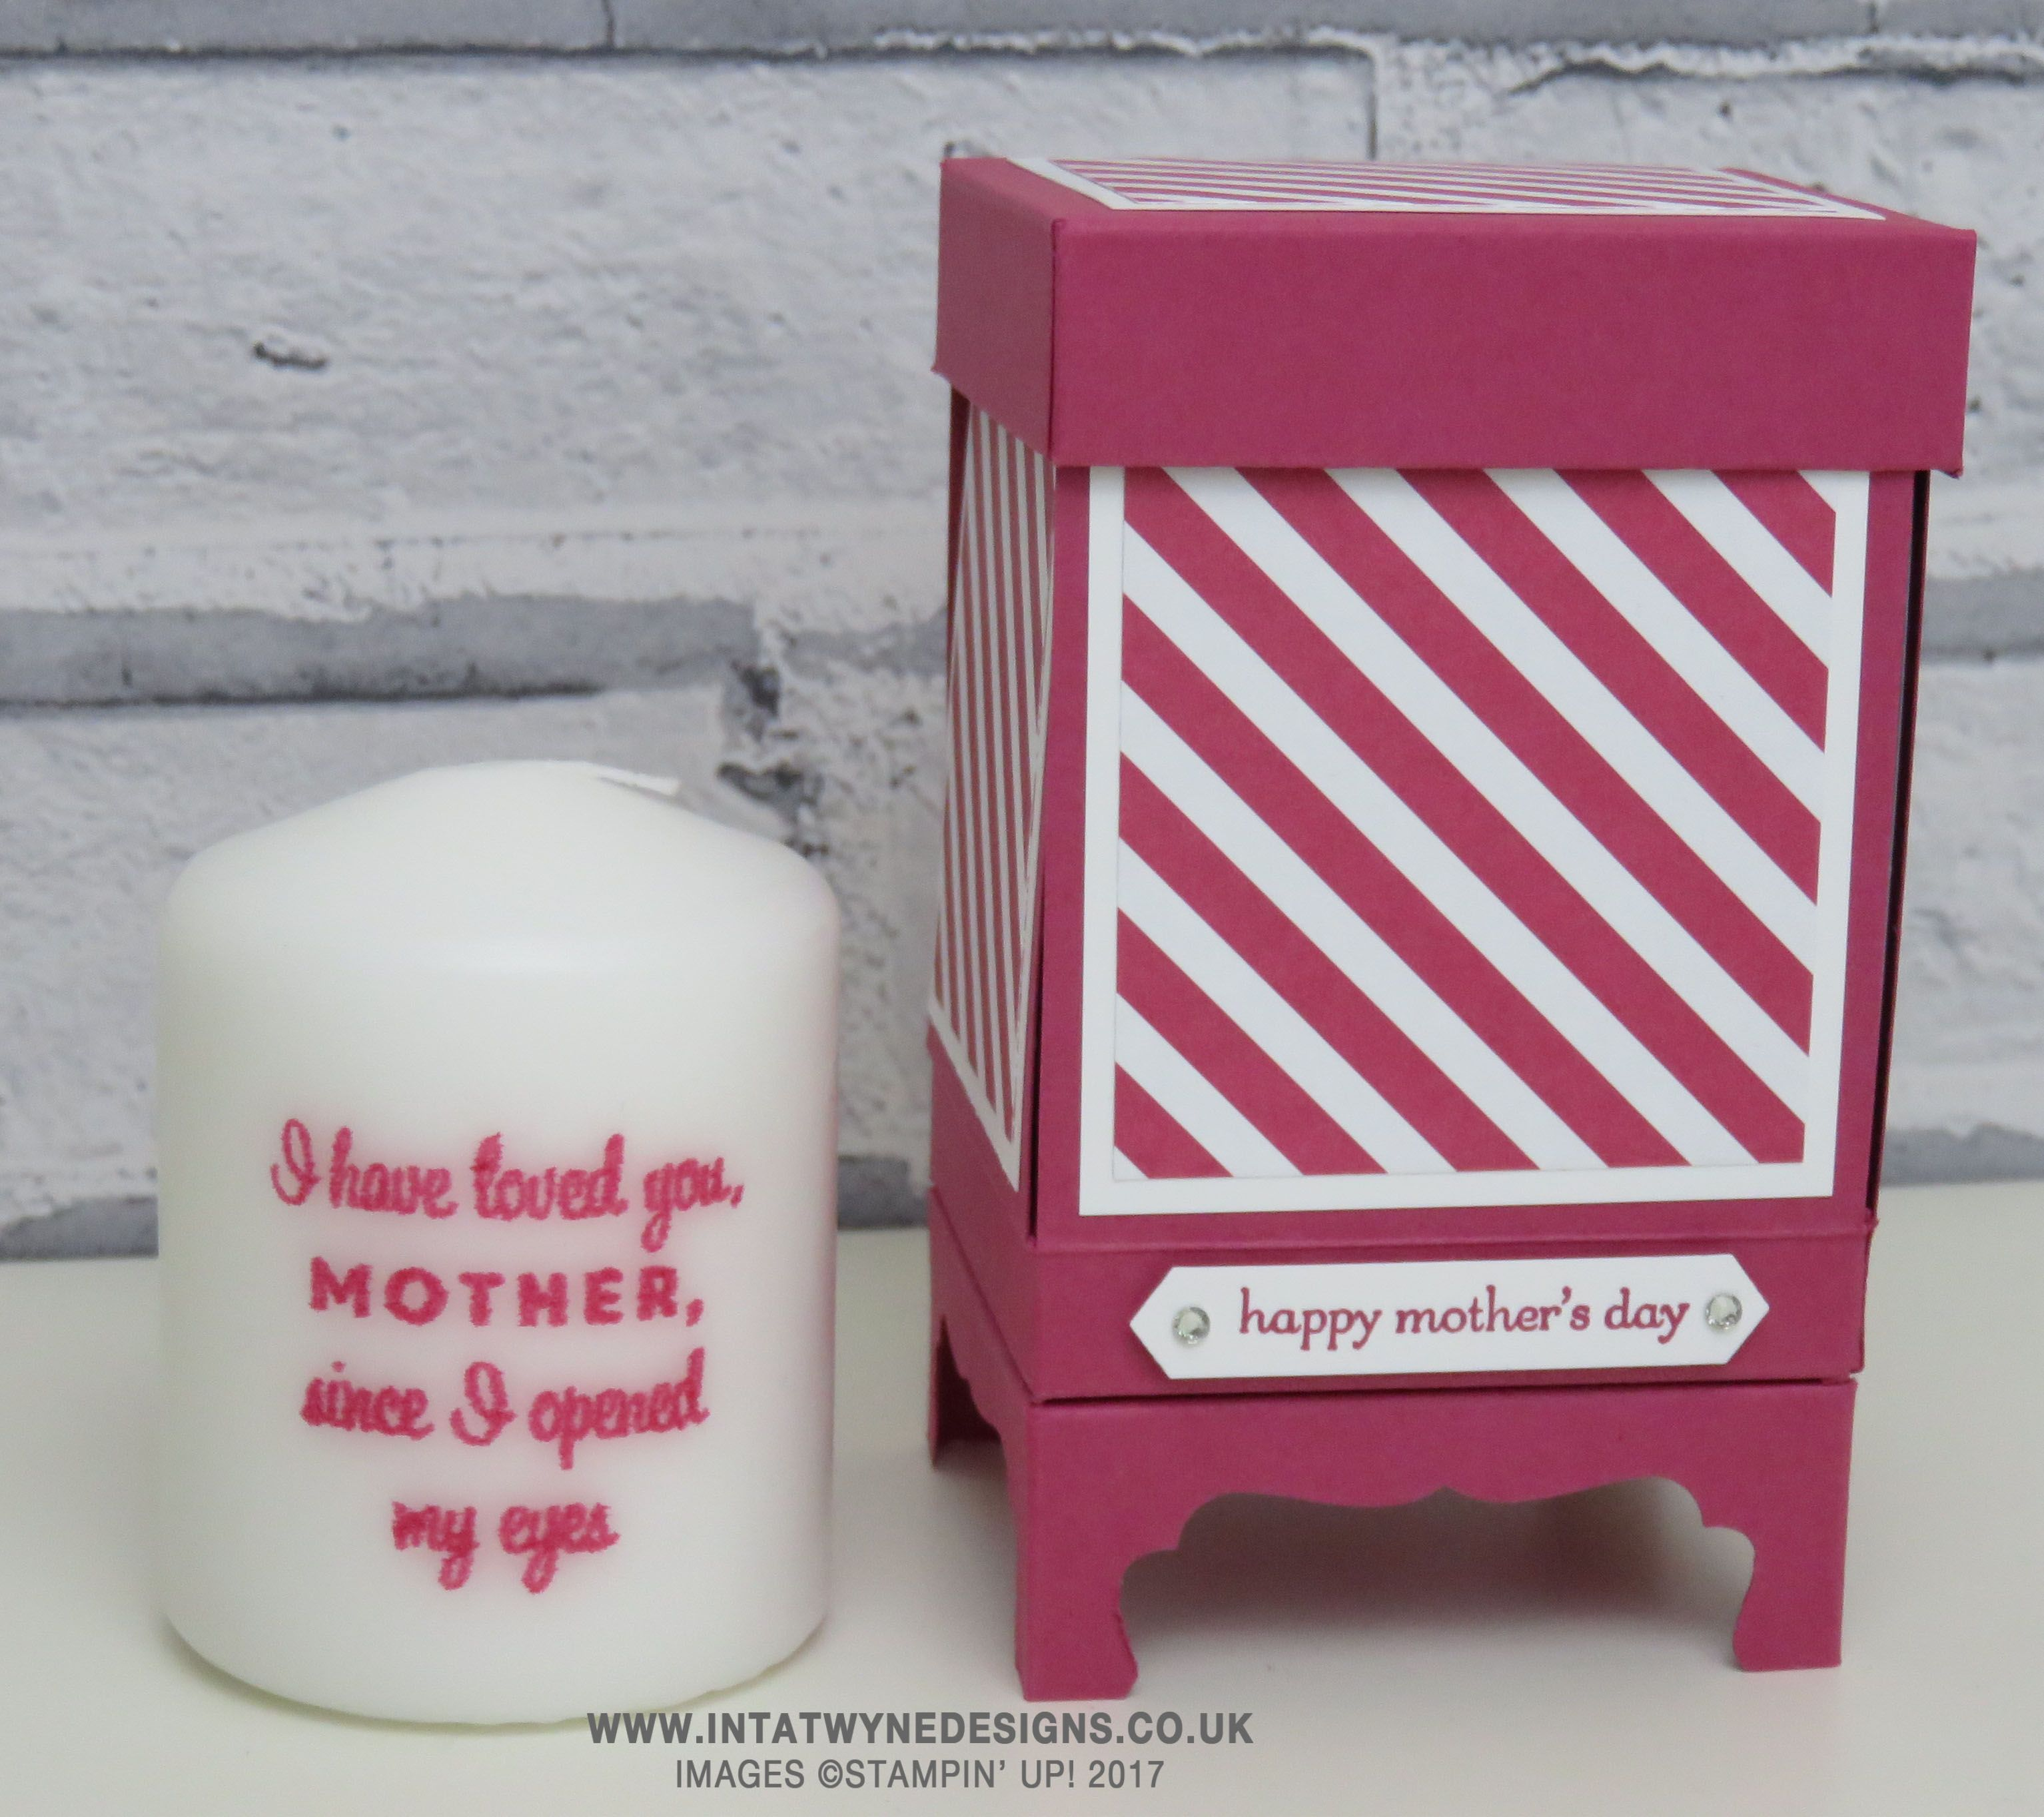 Mothers Day Week: Small Exploding Candle Box on Legs ...